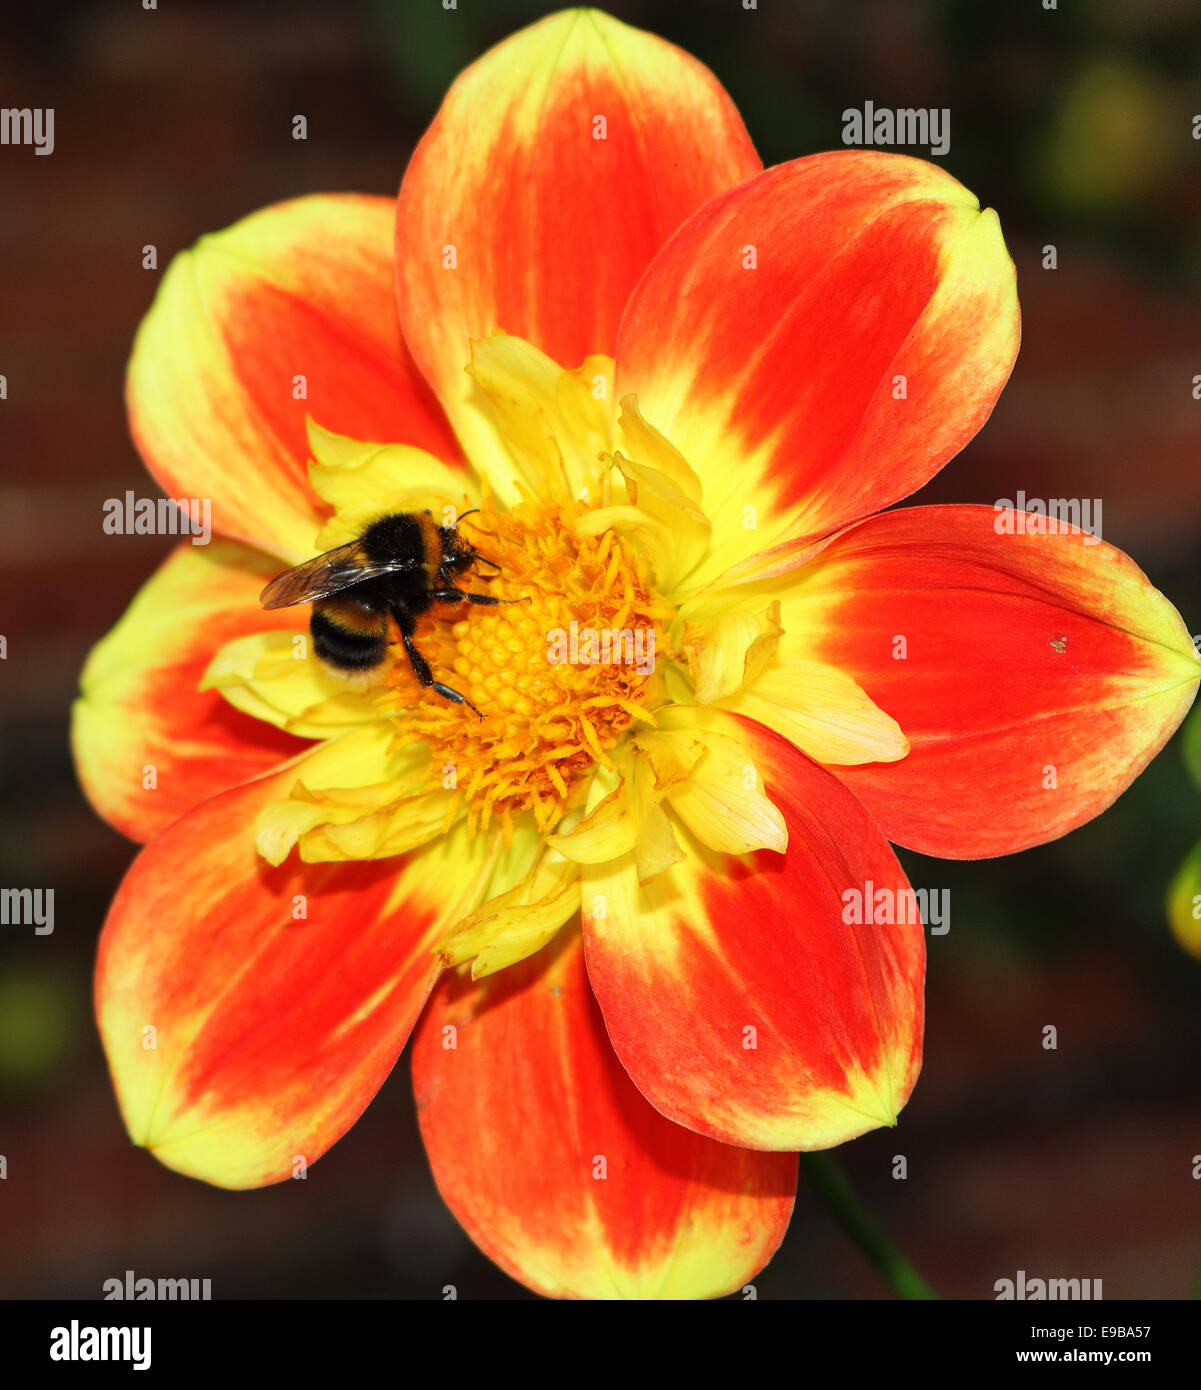 Honey Bee collecting Pollen from a red and yellow Dahlia flower - Stock Image